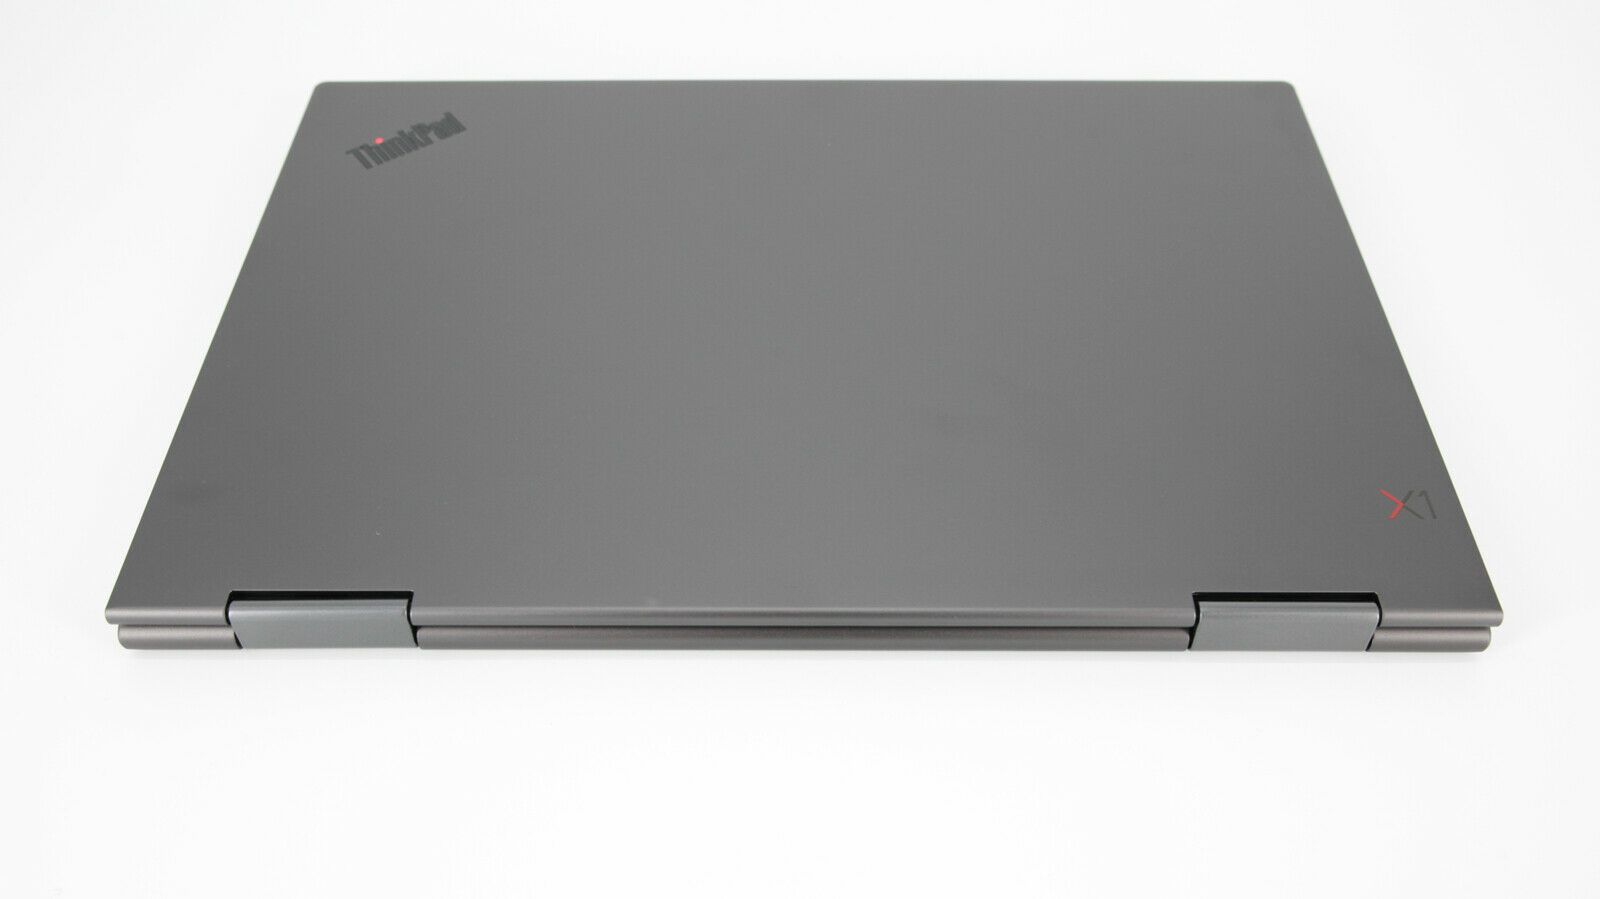 Lenovo Thinkpad X1 Yoga 4th Gen: 4K Touch, Core i7, 512GB, 16GB RAM Warranty VAT - CruiseTech